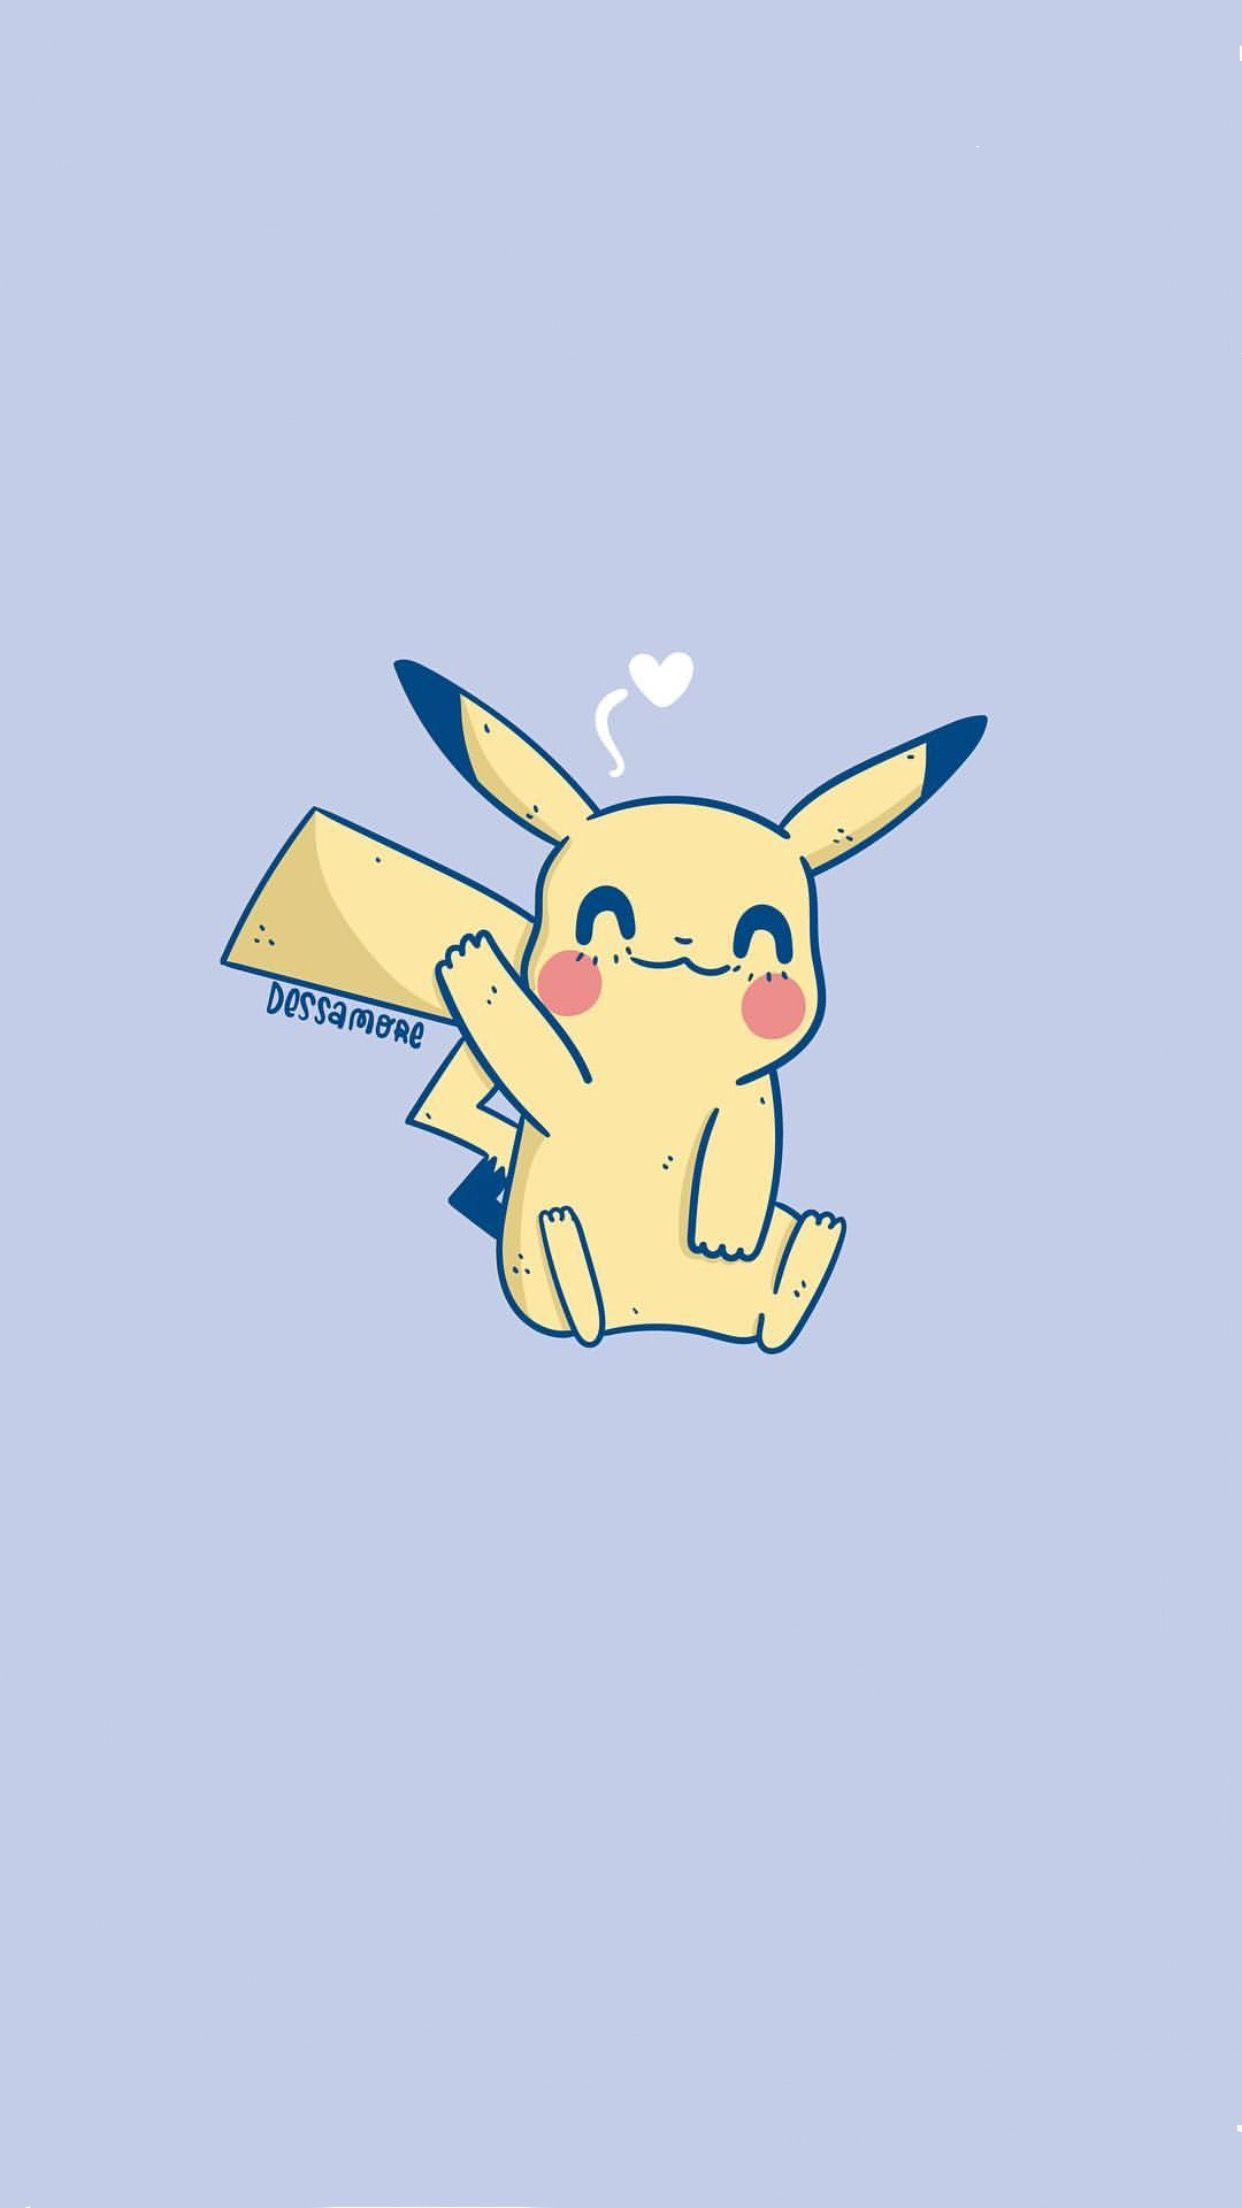 Wallpaper Iphone Android Pikachu Wallpaper Cute Pokemon